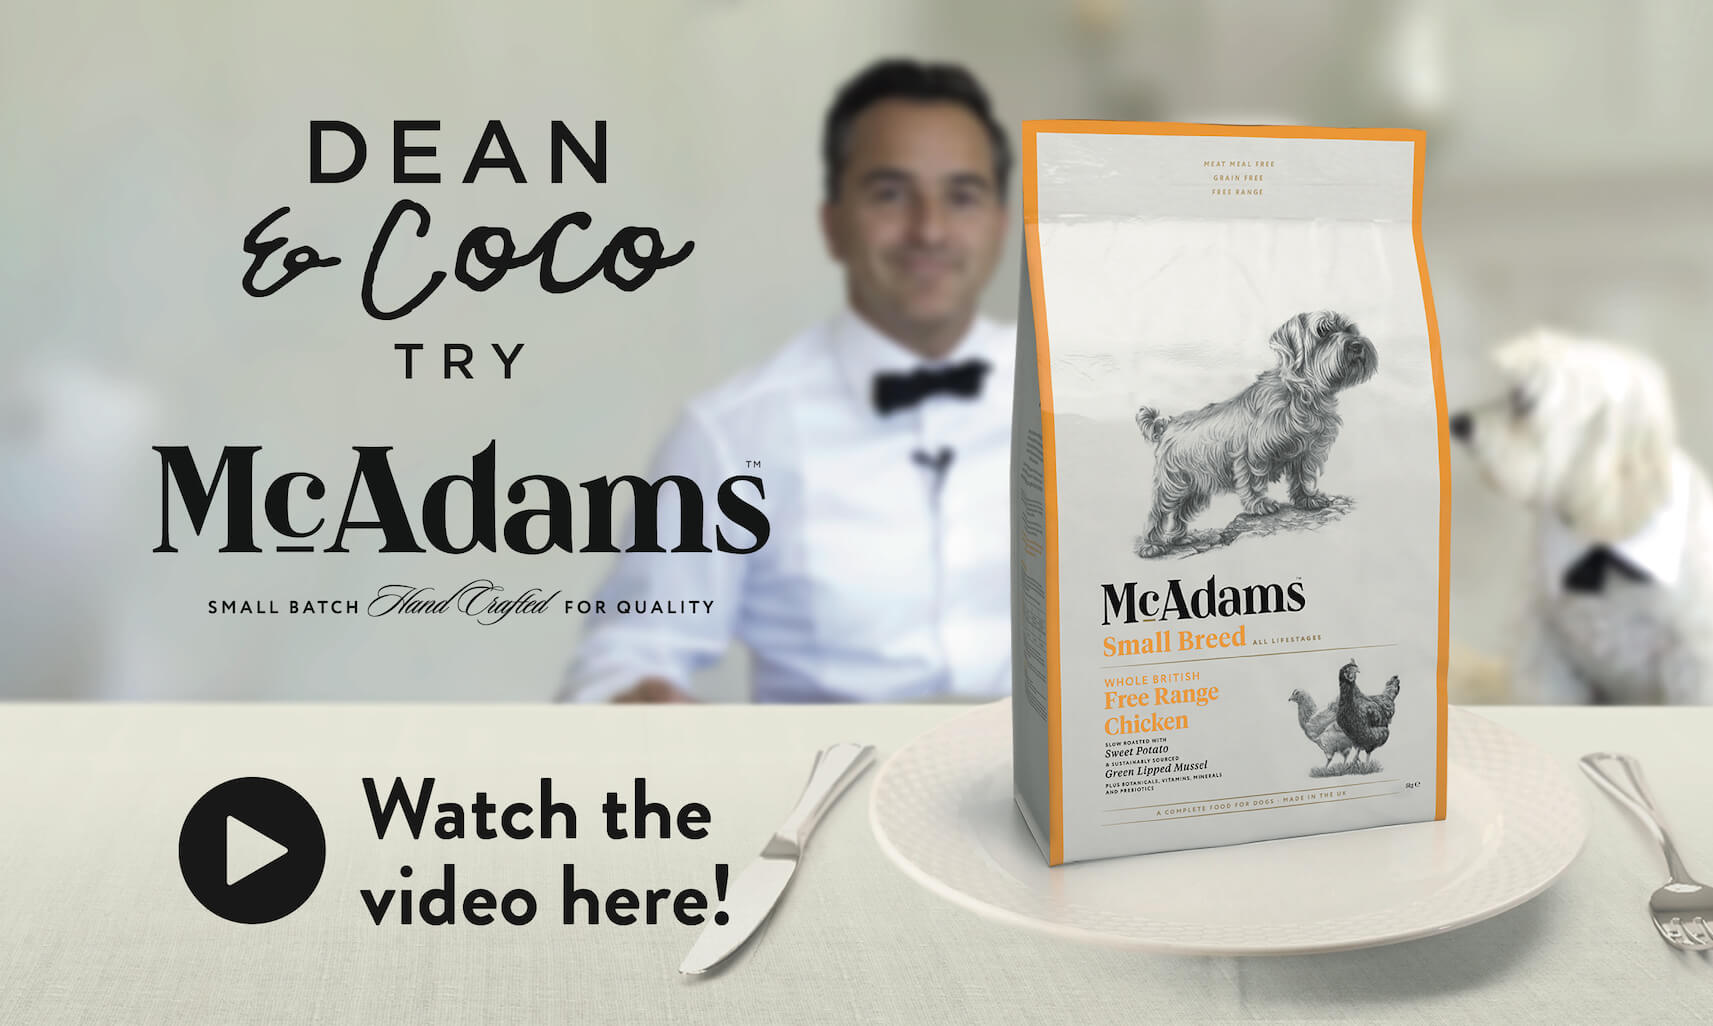 Dean & Coco try Mcadams. Watch the video here!